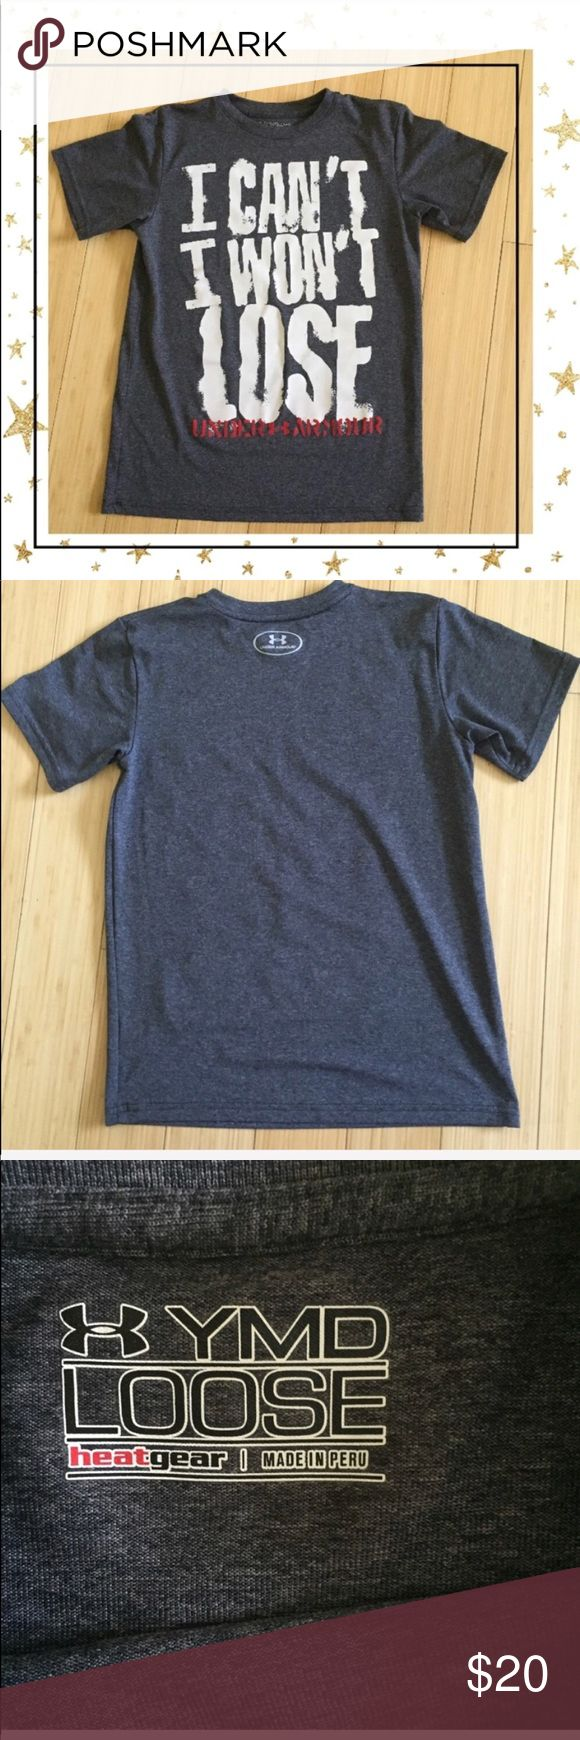 Under Amour Sport T-shirt (Gy23B7U) Grey Short sleeve top. Polyester. Made in Peru. Excellent condition. No tag with size but i would say it size Sm/M. See pictures for measurements. Offers welcome. No trade Under Armour Tops Tees - Short Sleeve